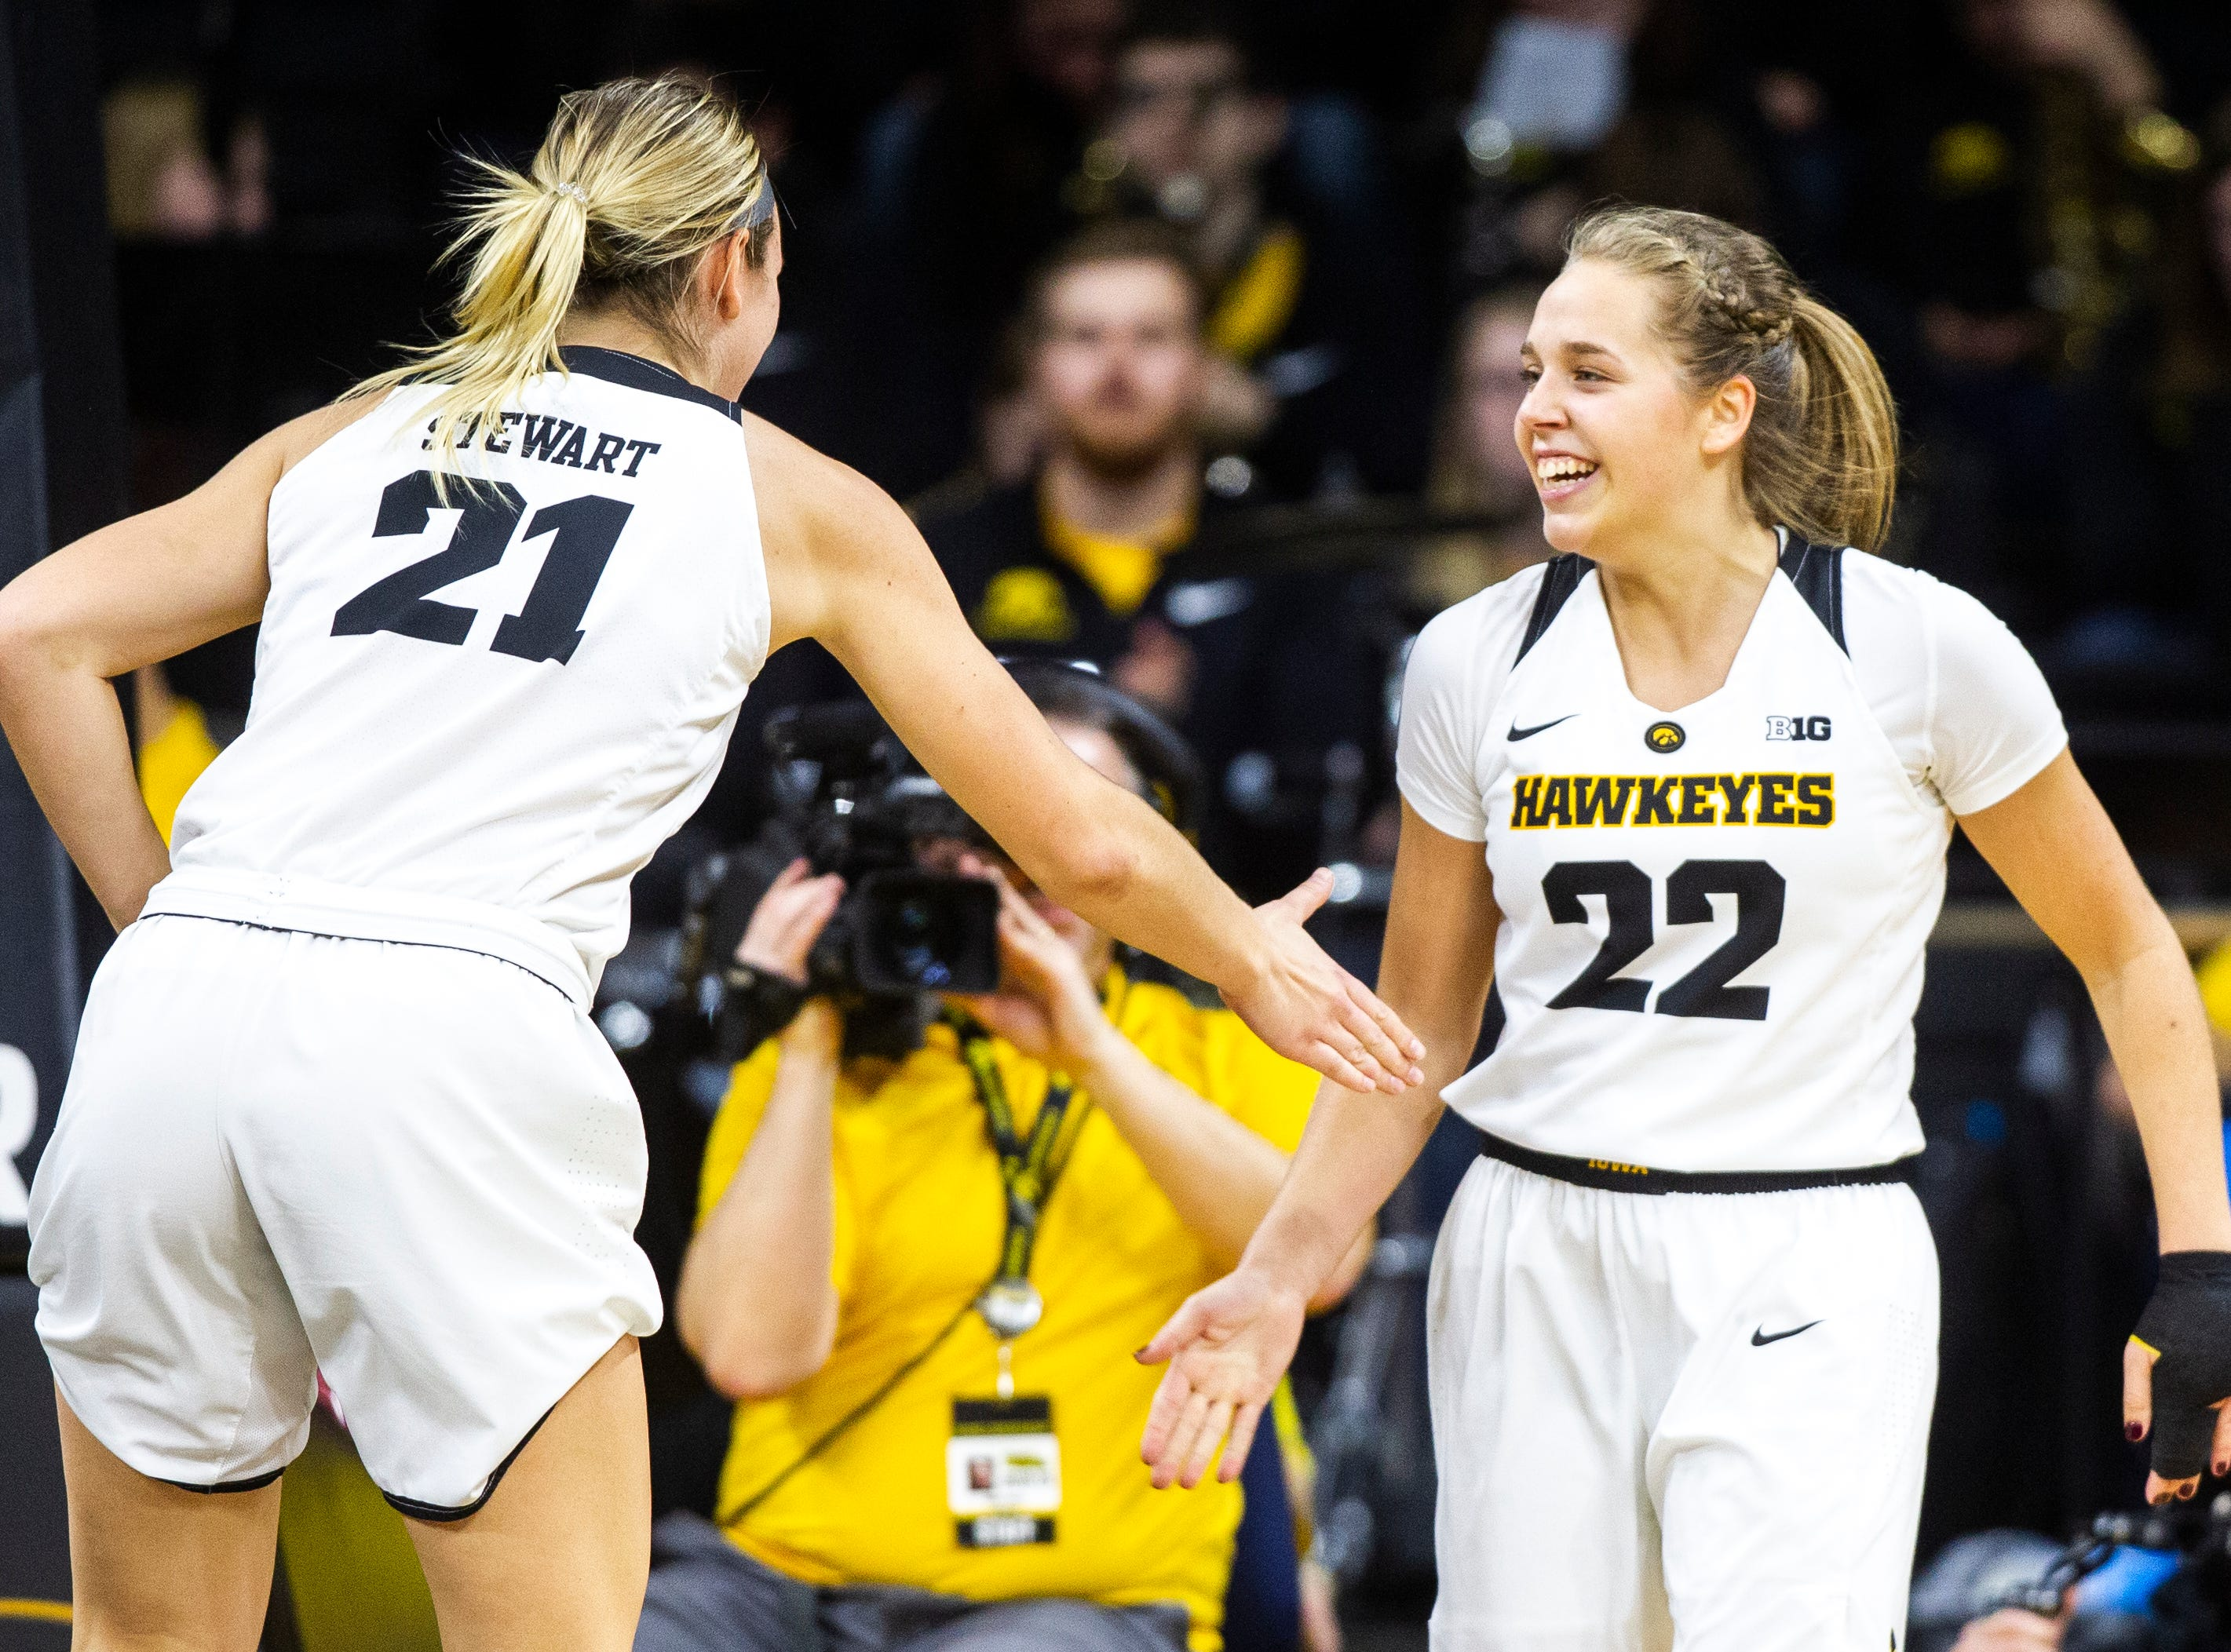 Iowa guard Kathleen Doyle (22) gets a high-five from Iowa forward Hannah Stewart (21) during a NCAA women's basketball game on Sunday, Dec. 16, 2018, at Carver-Hawkeye Arena in Iowa City.